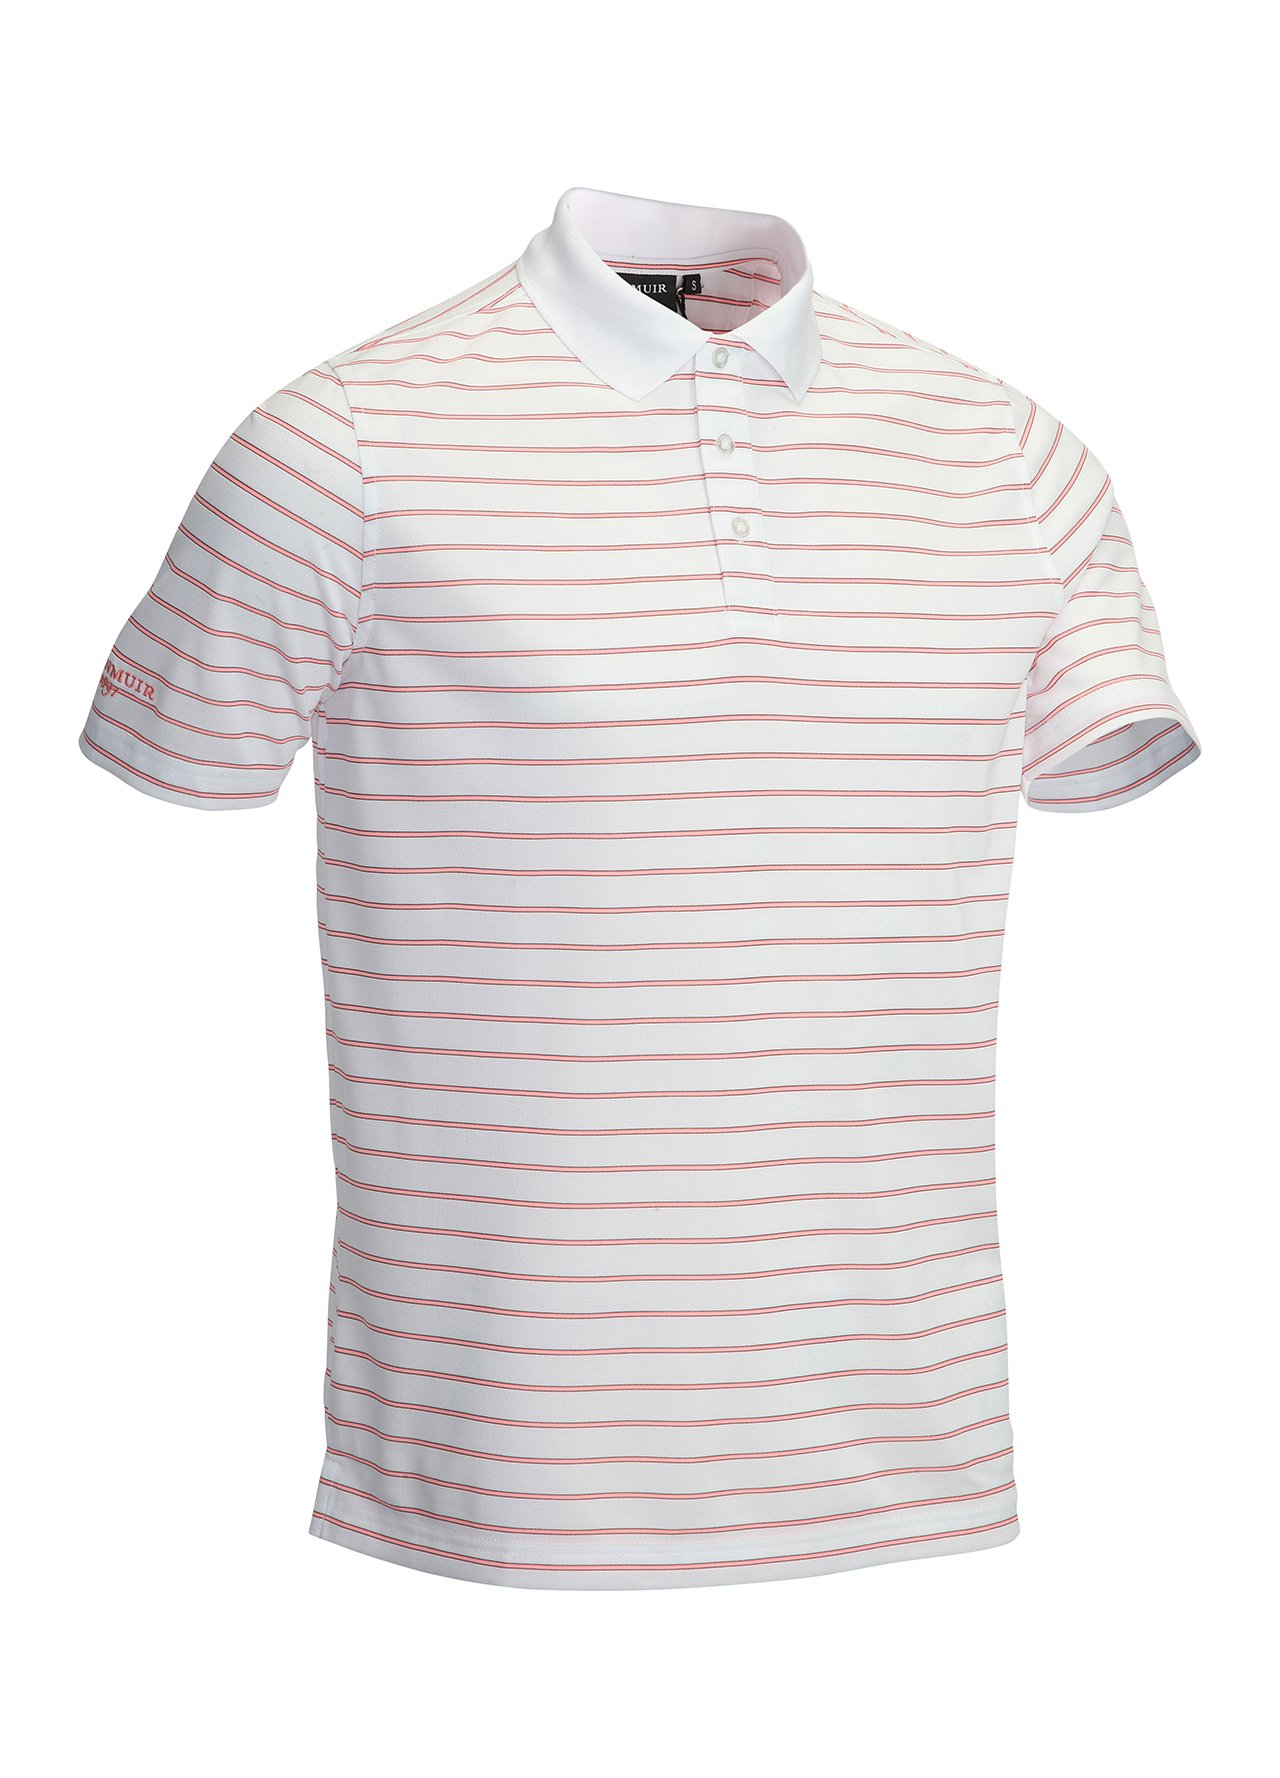 Glenmuir textured stripe polo shirt white medium